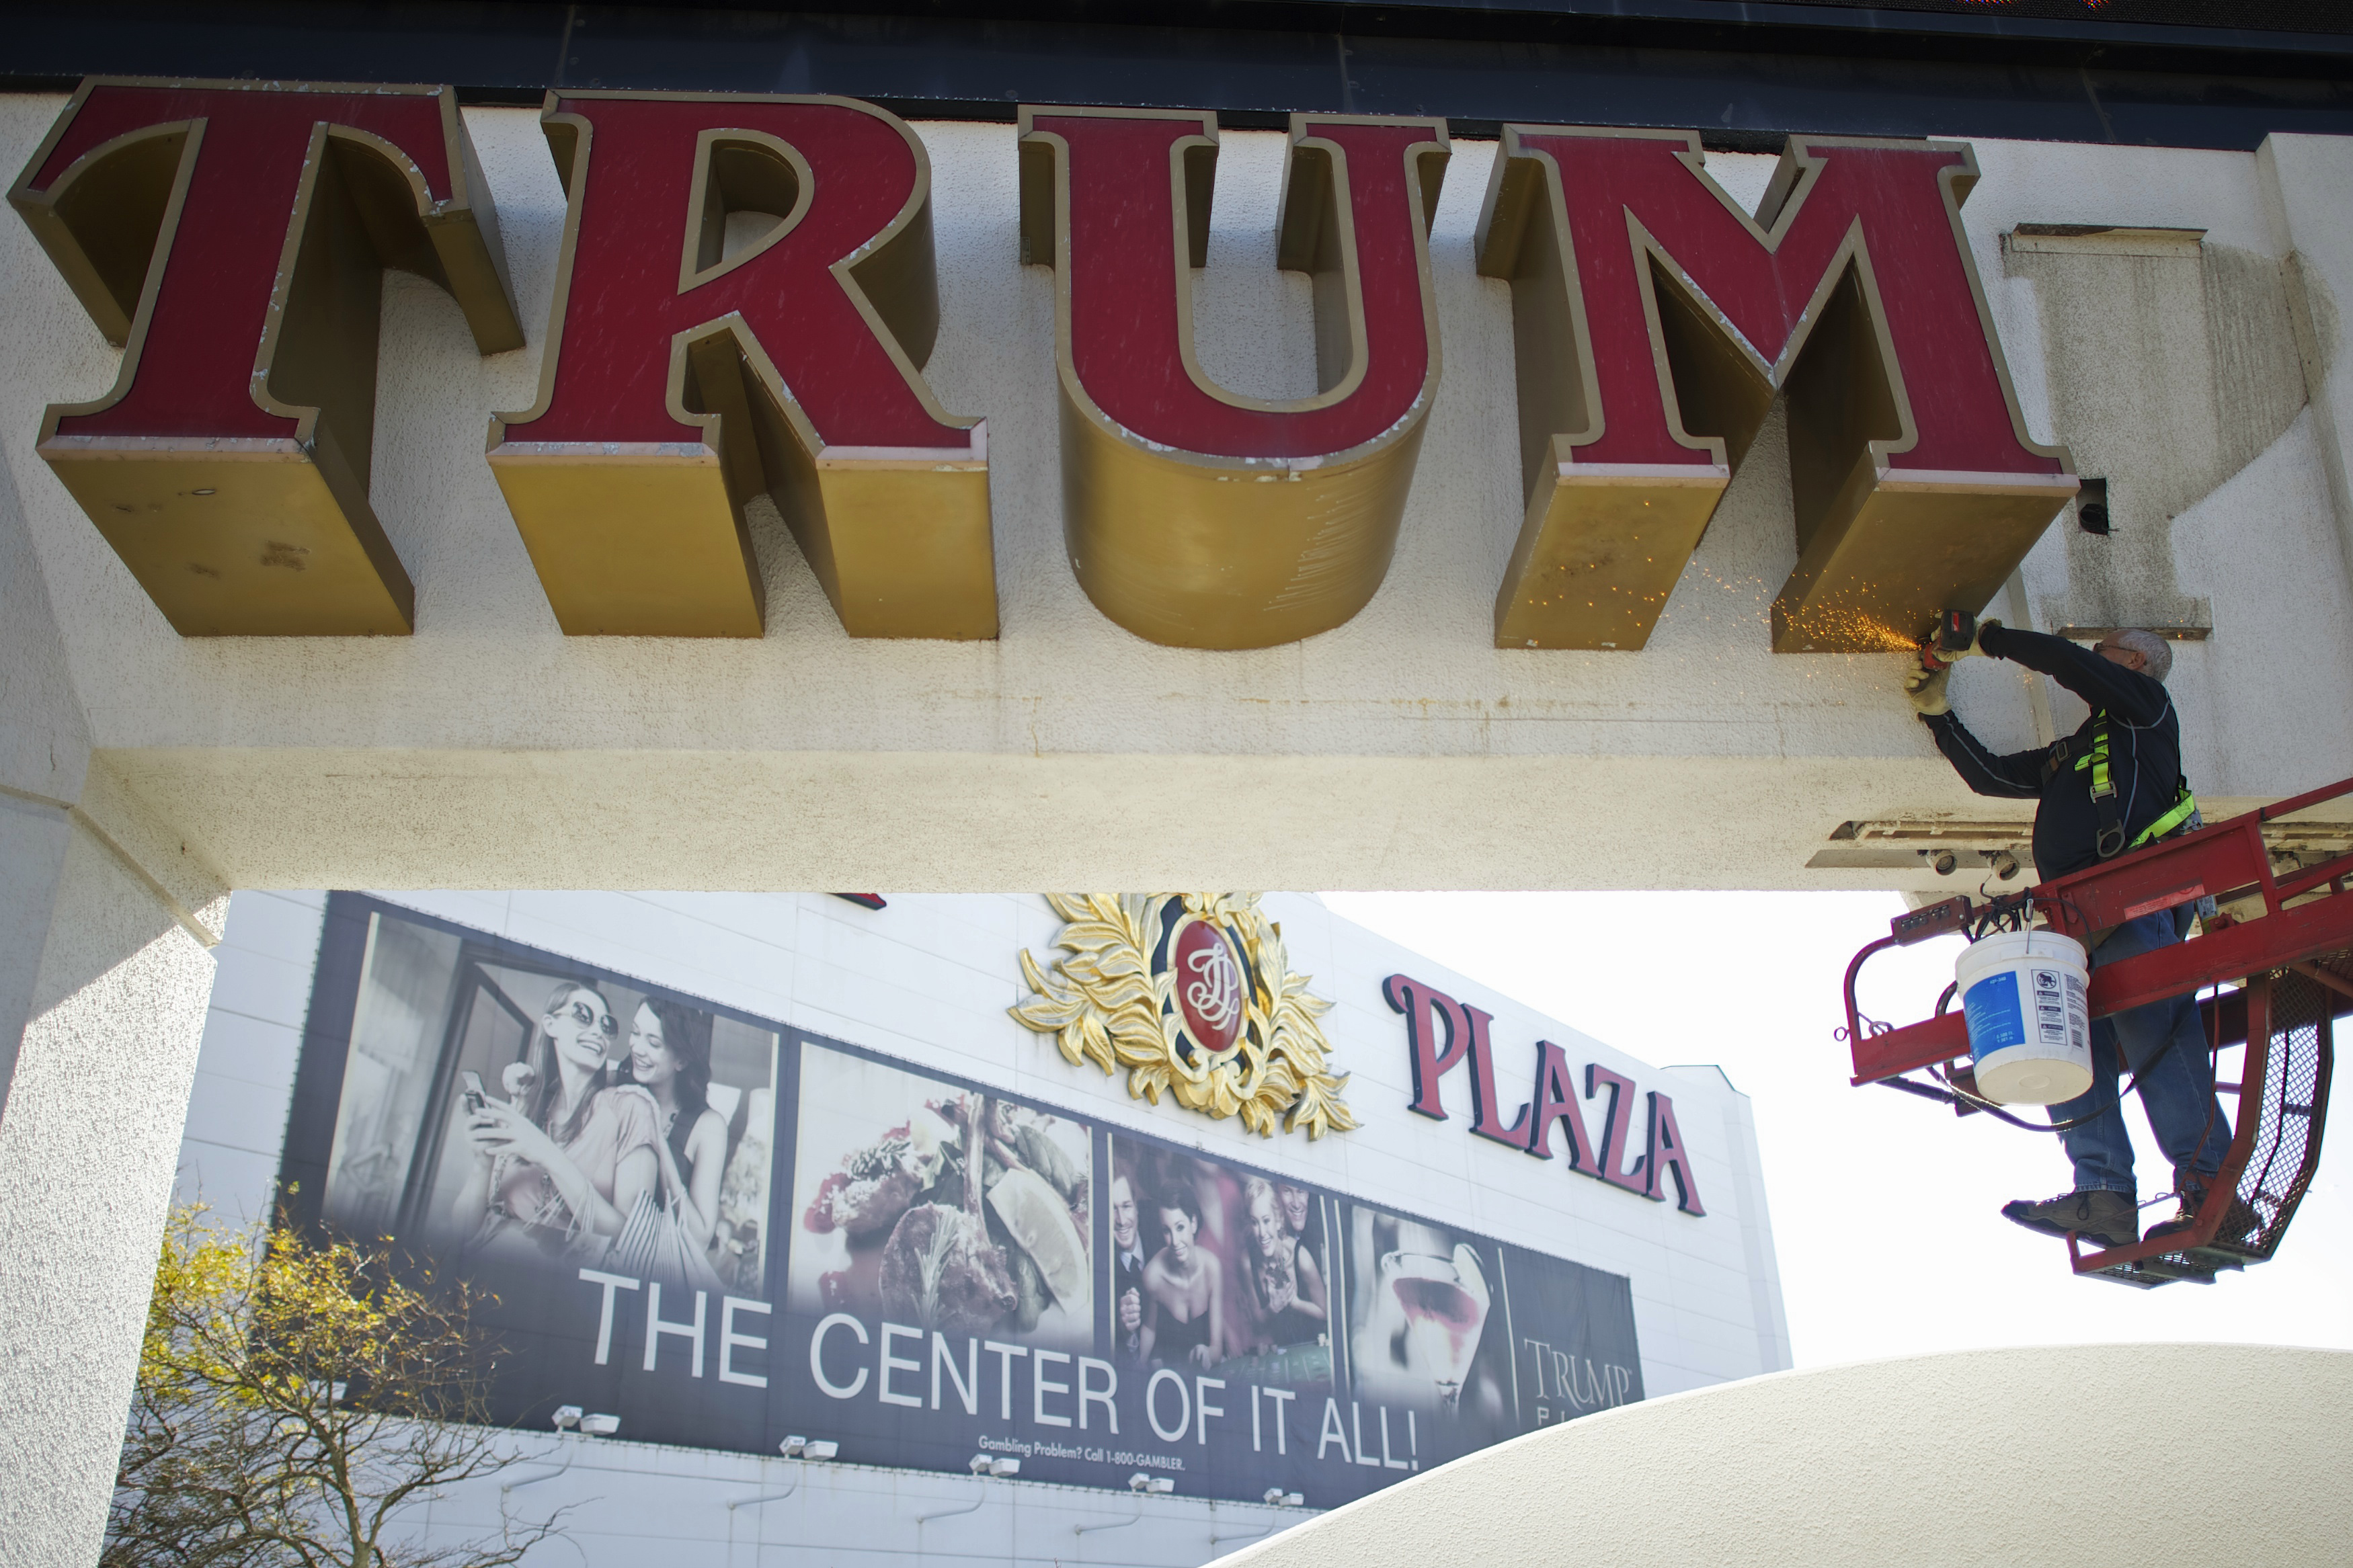 Williams, of Calvi Electric, saws mounts off the letter 'M' from the signage of Trump Plaza Casino in Atlantic City, New Jersey